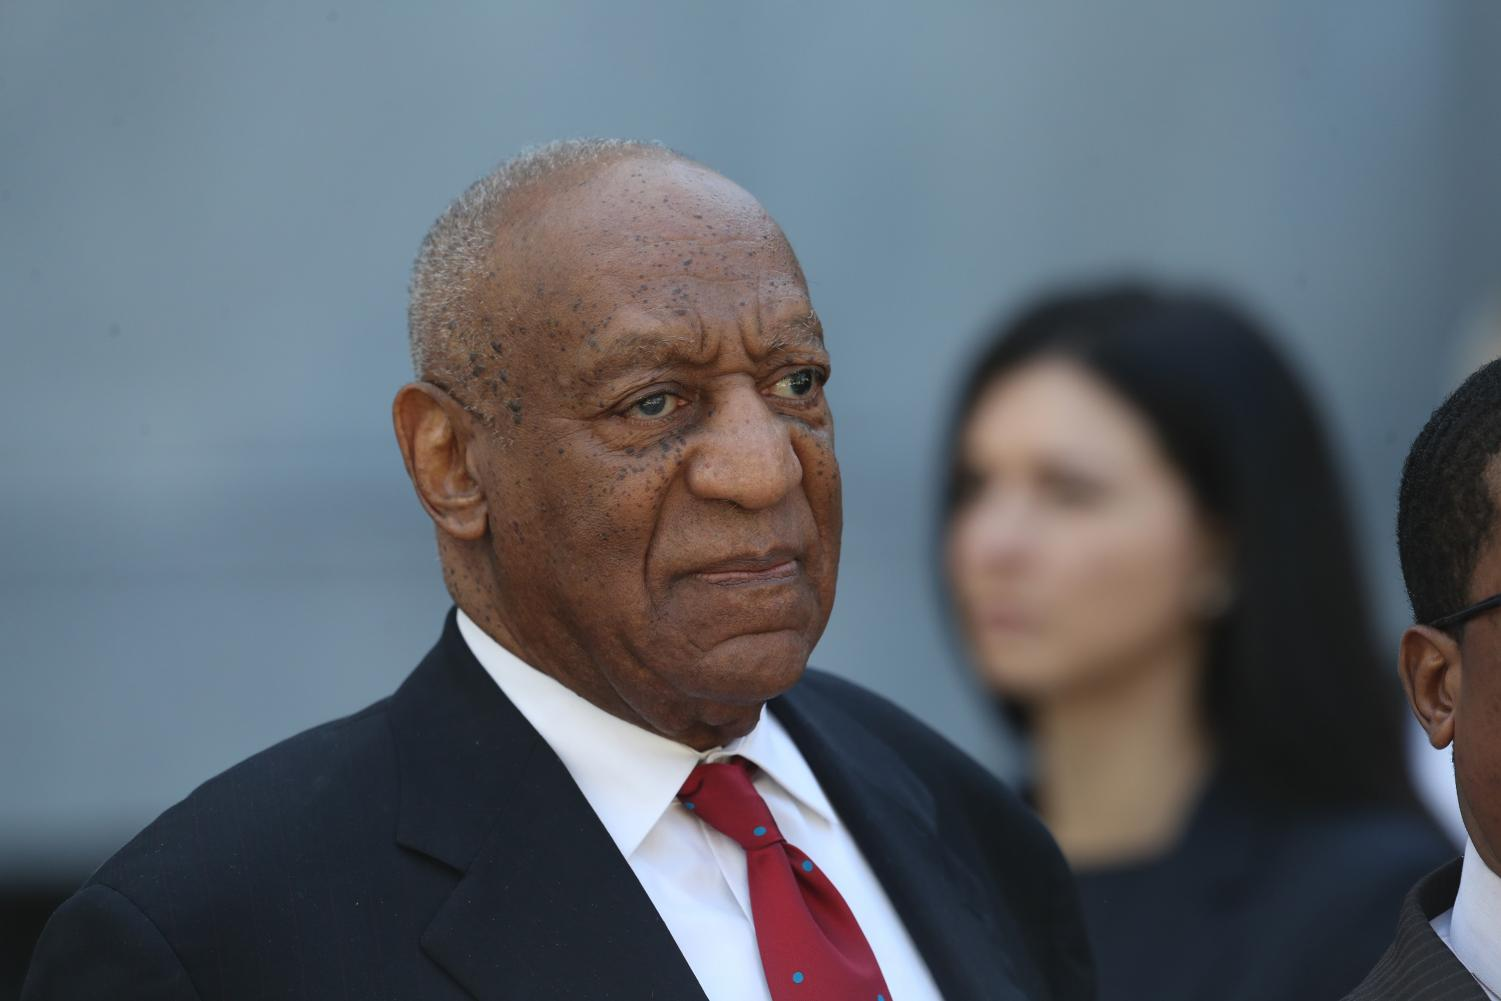 Bill Cosby walks out of the Montgomery County Courthouse on Thursday, April 26, 2018 in Norristown, Pa. after learning a jury found him guilty of sexual assault. The Northwestern Board of Trustees revoked Cosby's honorary degree Monday.